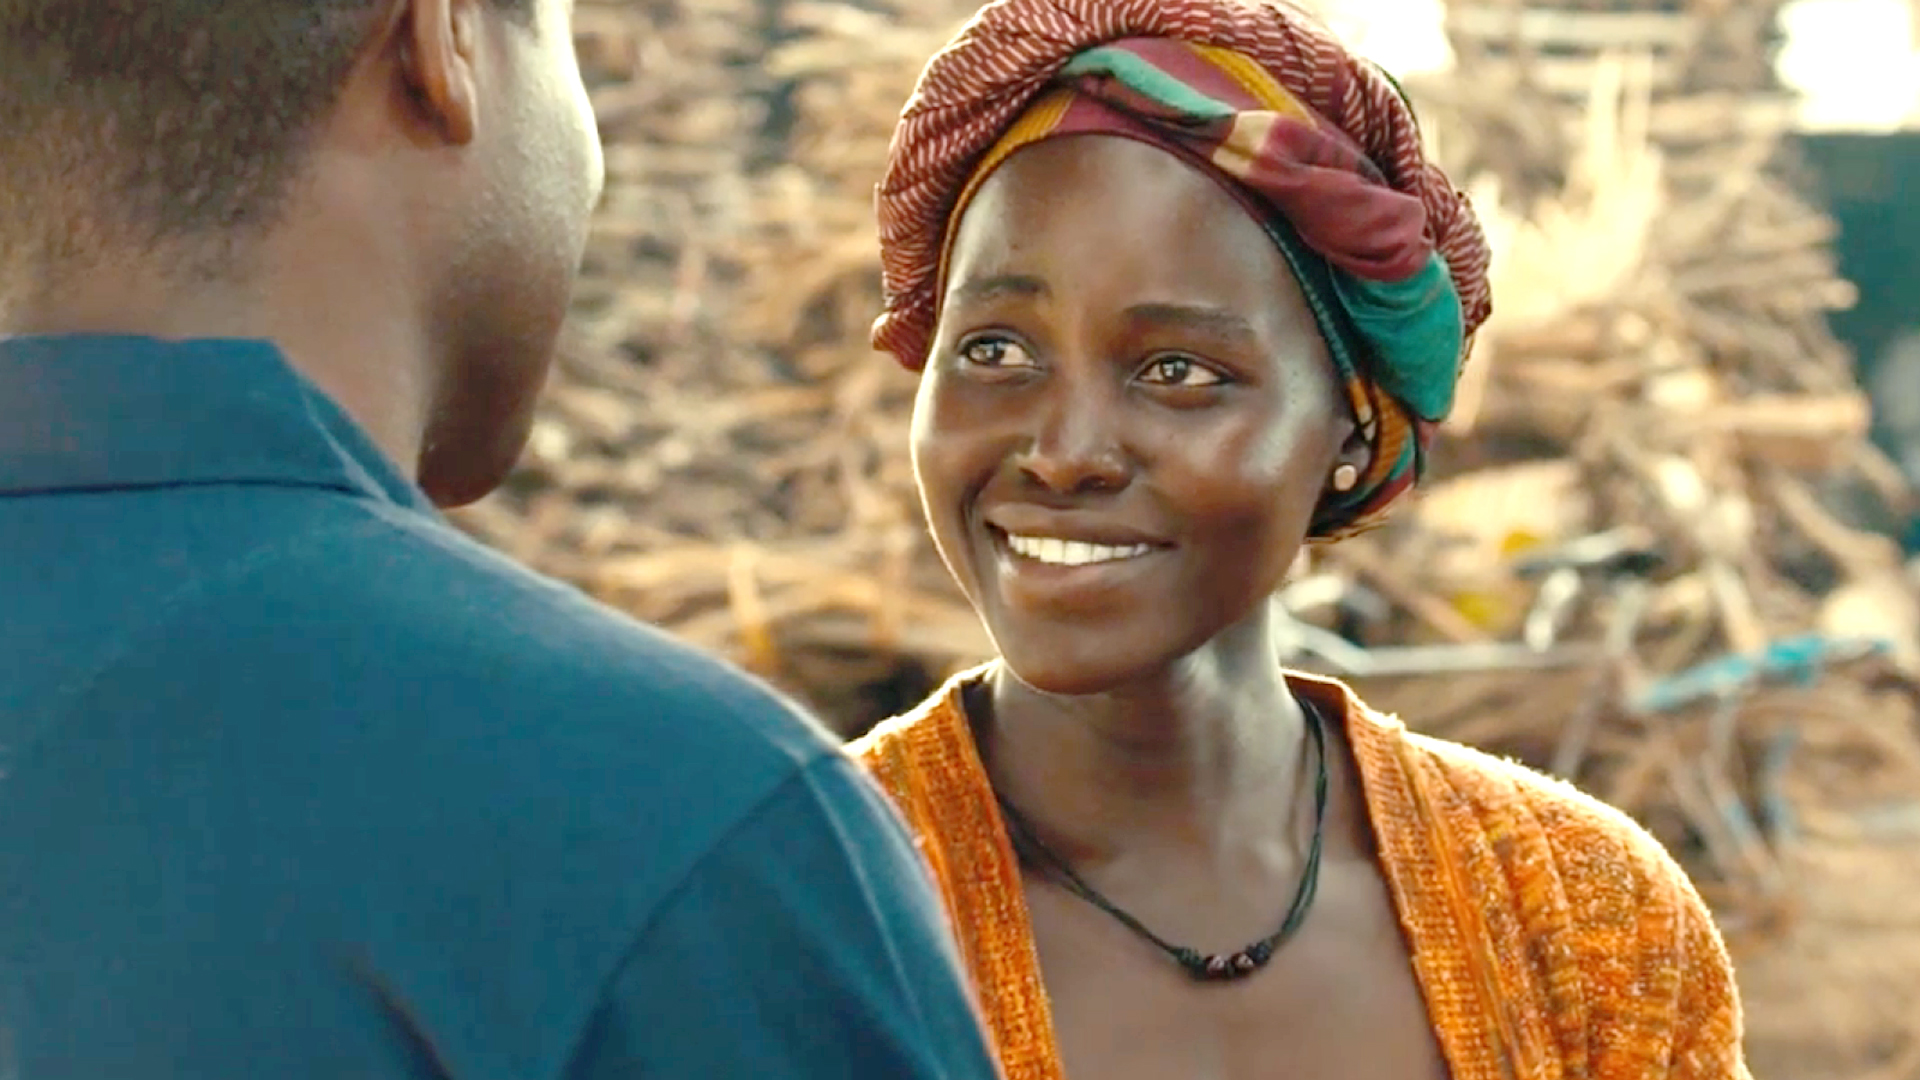 Film still from Queen of Katwe - Phiona smiles at her chess coach